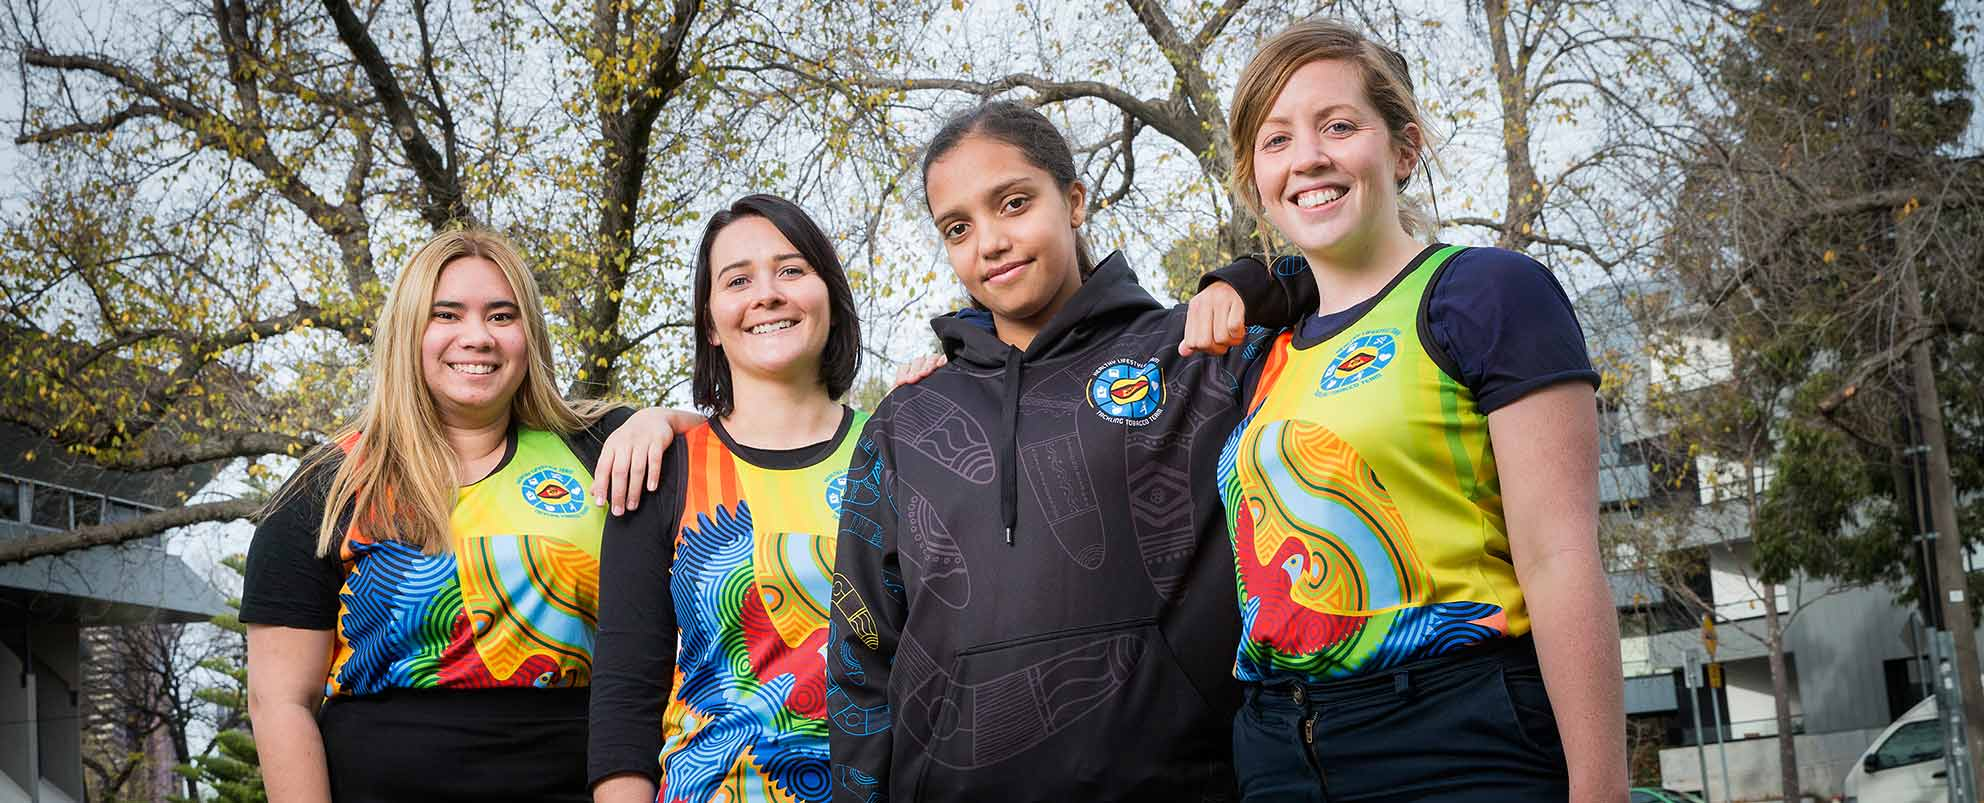 Photo of four smiling young women, standing with arms around each other's shoulders, three wearing brightly coloured singlets with an Indigeneous bird design, the other wearing a dark hooded sweater with Indigeneous designs,  in a park with autumn trees towering above them.